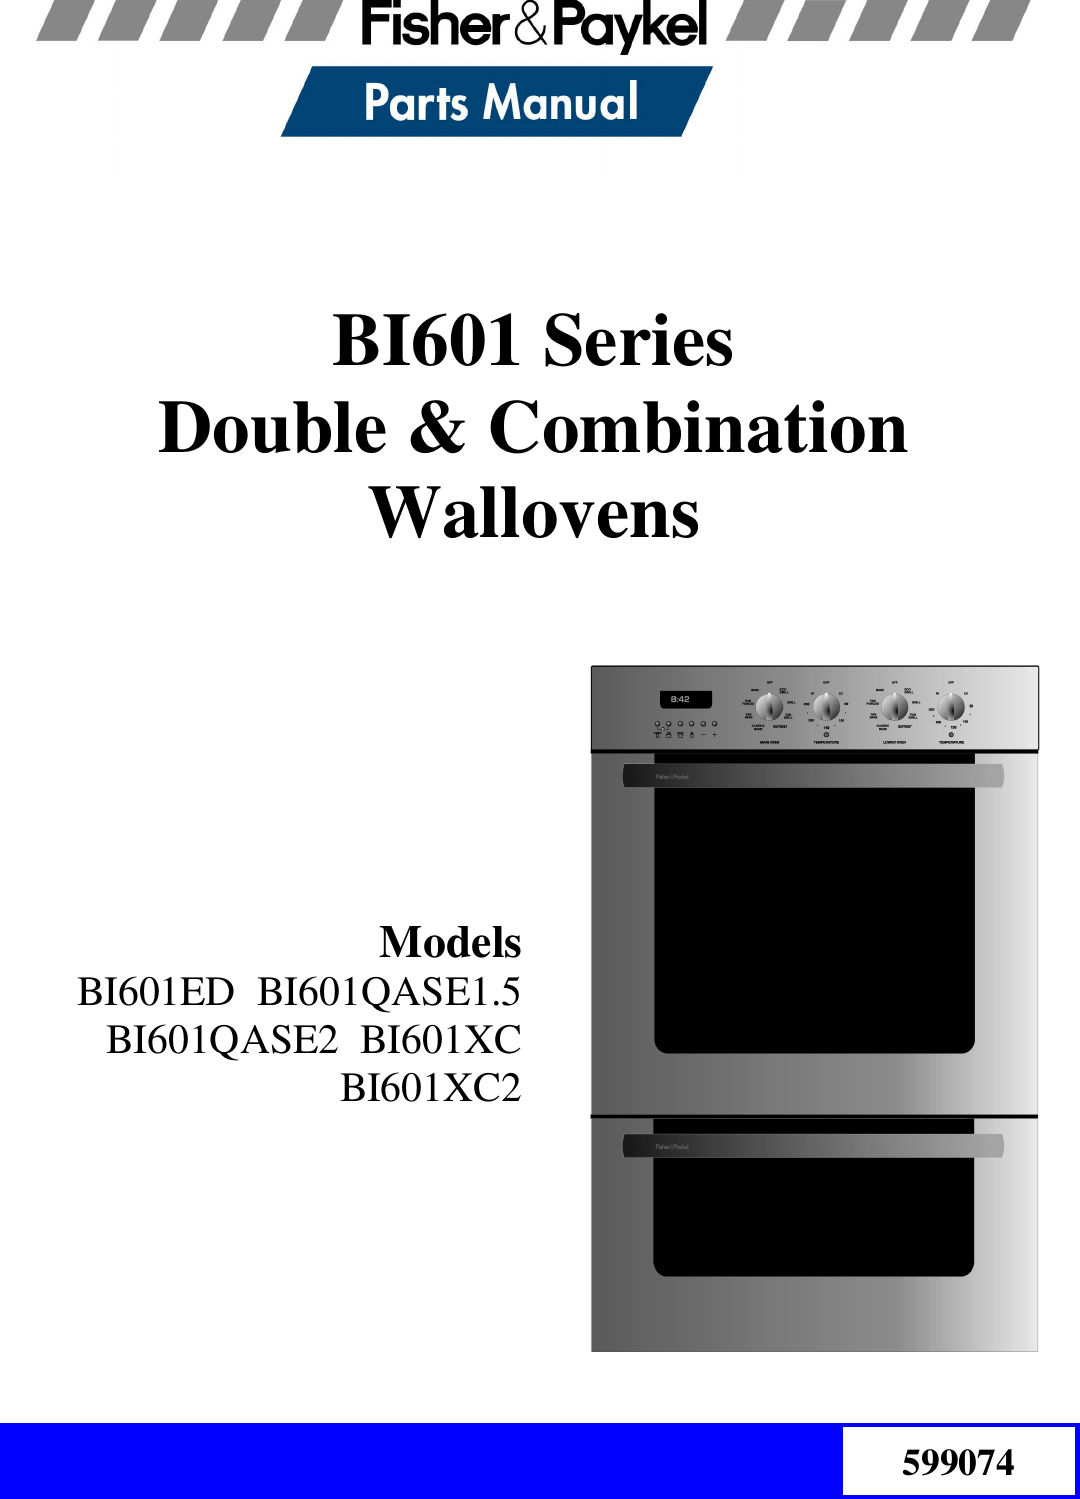 Fisher And Paykel Bi601 Series Users Manual 599074 Double Combo 1450 Microwave Oven Schematic Image Touch Control Panel Circuit Wall Ovens